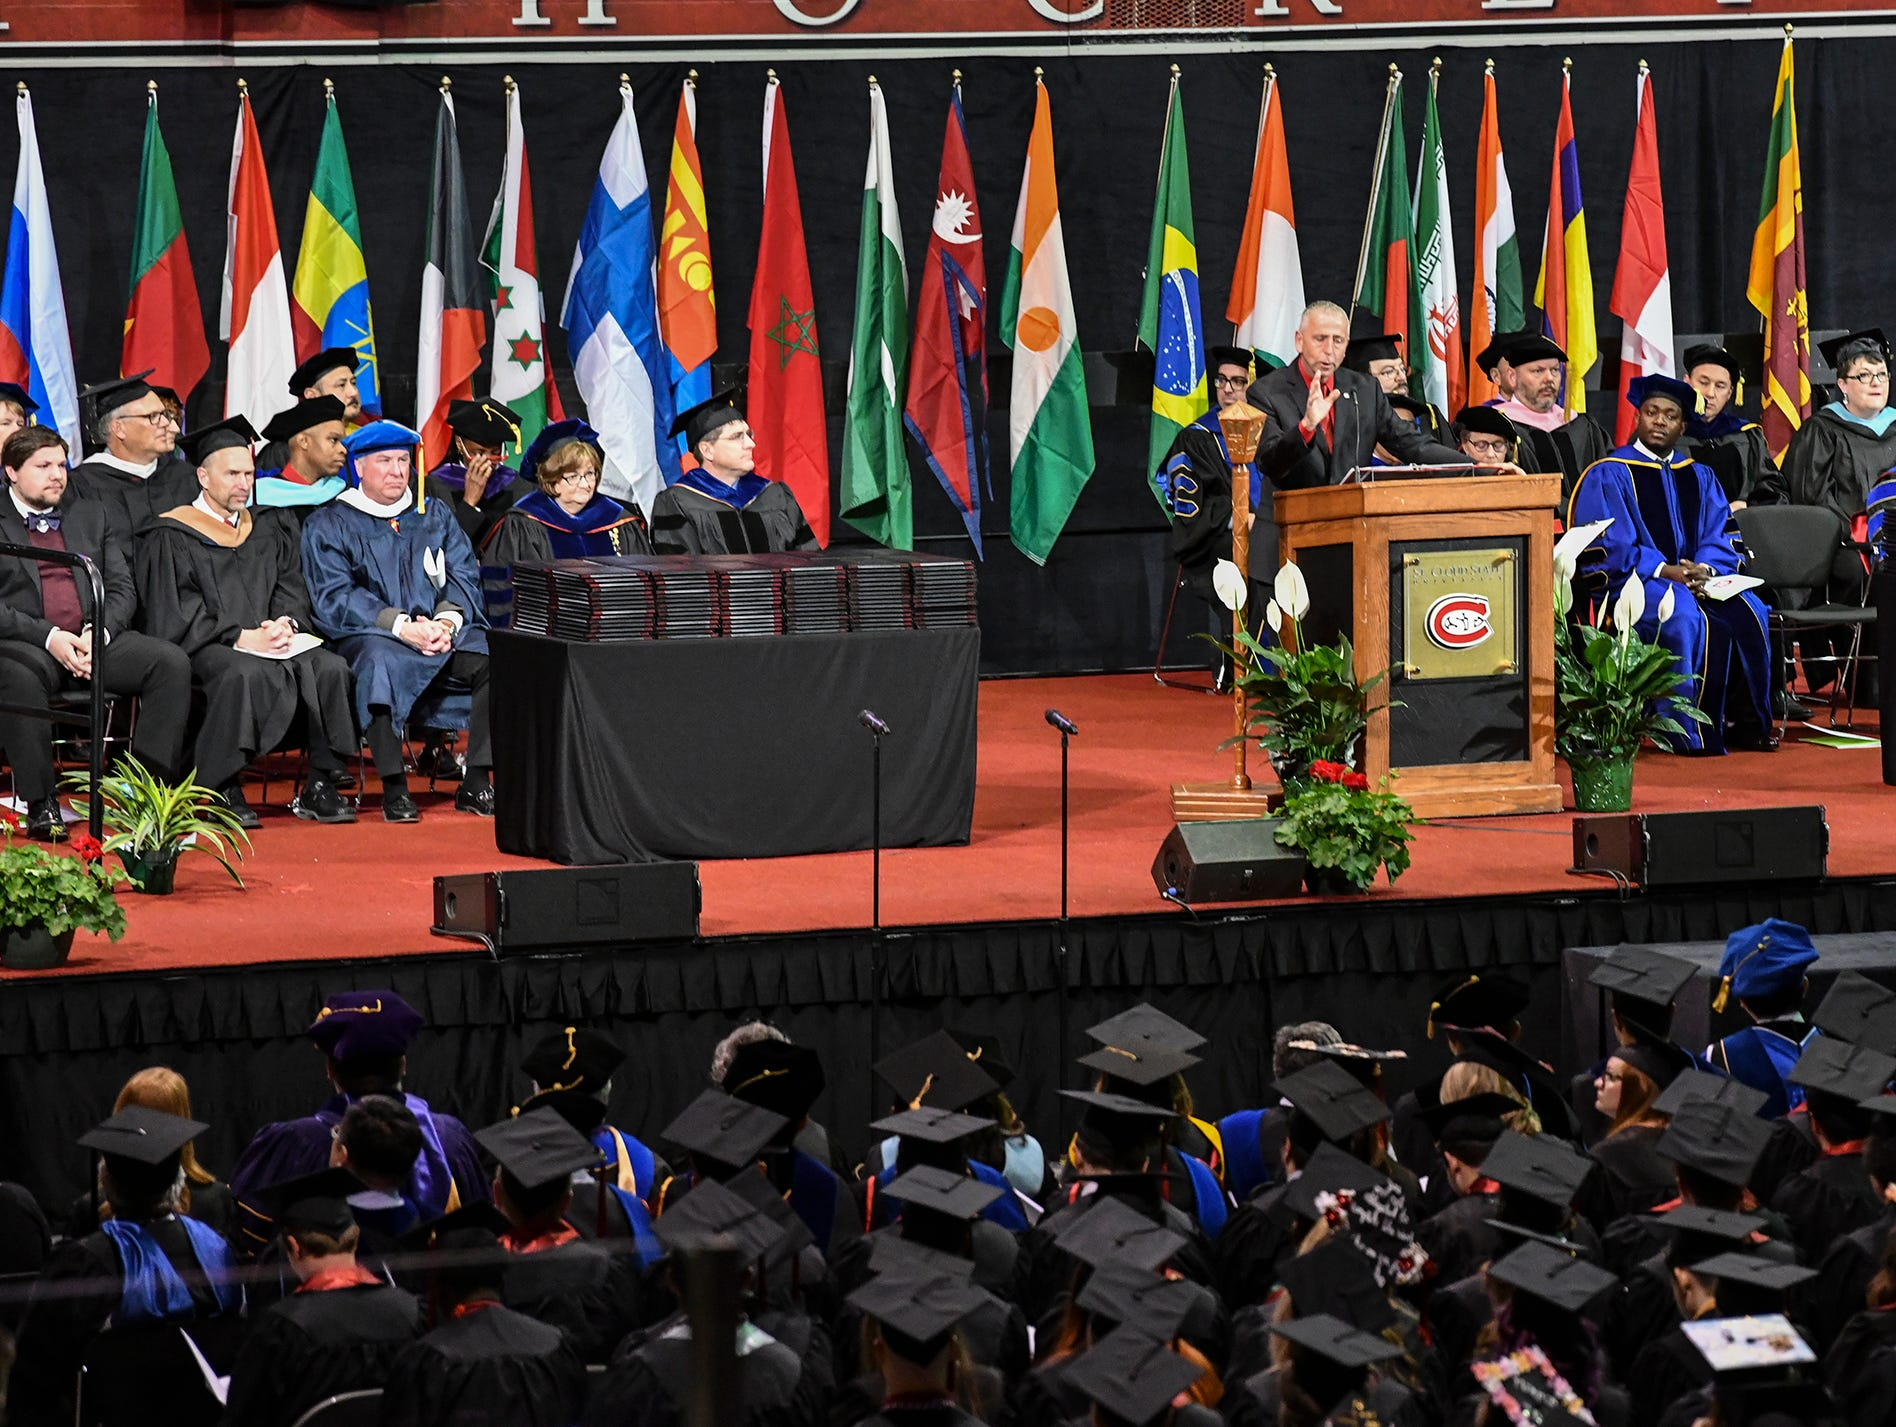 St. Cloud Mayor Dave Kleis speaks during the morning commencement ceremony Friday, May 10, in the Herb Brooks National Hockey Center at St. Cloud State University in St. Cloud.